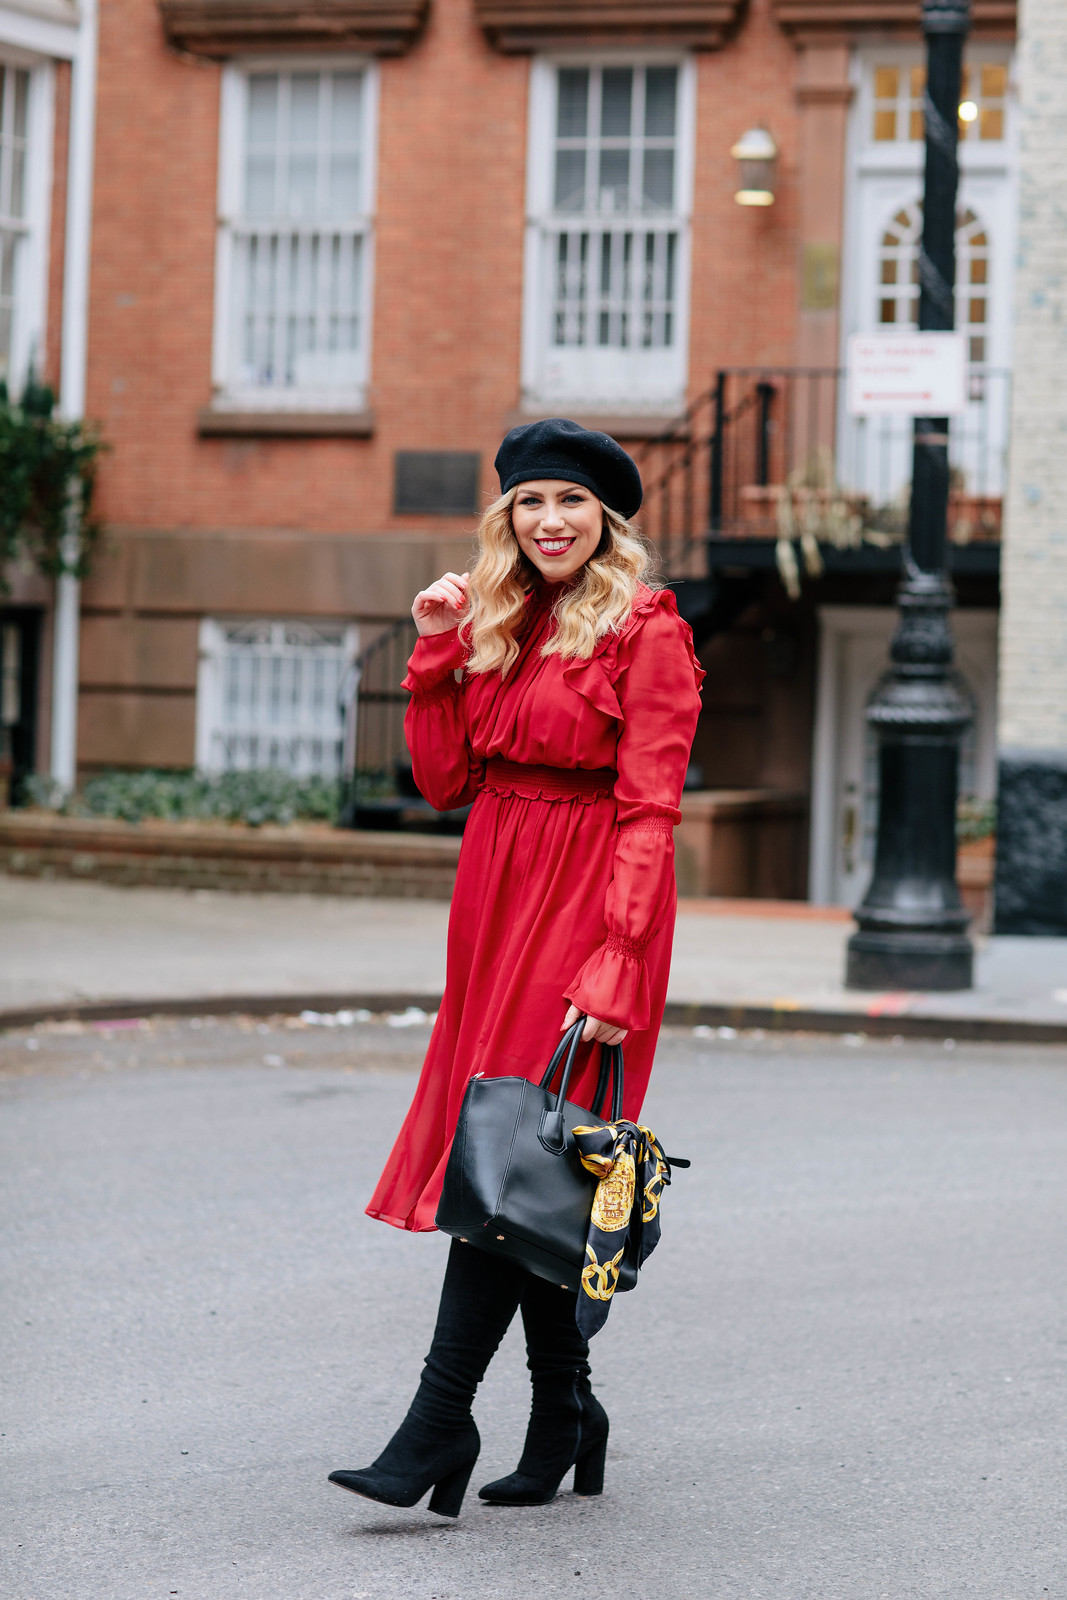 Outfit Inspiration Winter Red Midi Ruffle Dress Black Satchel Black Boots Beret